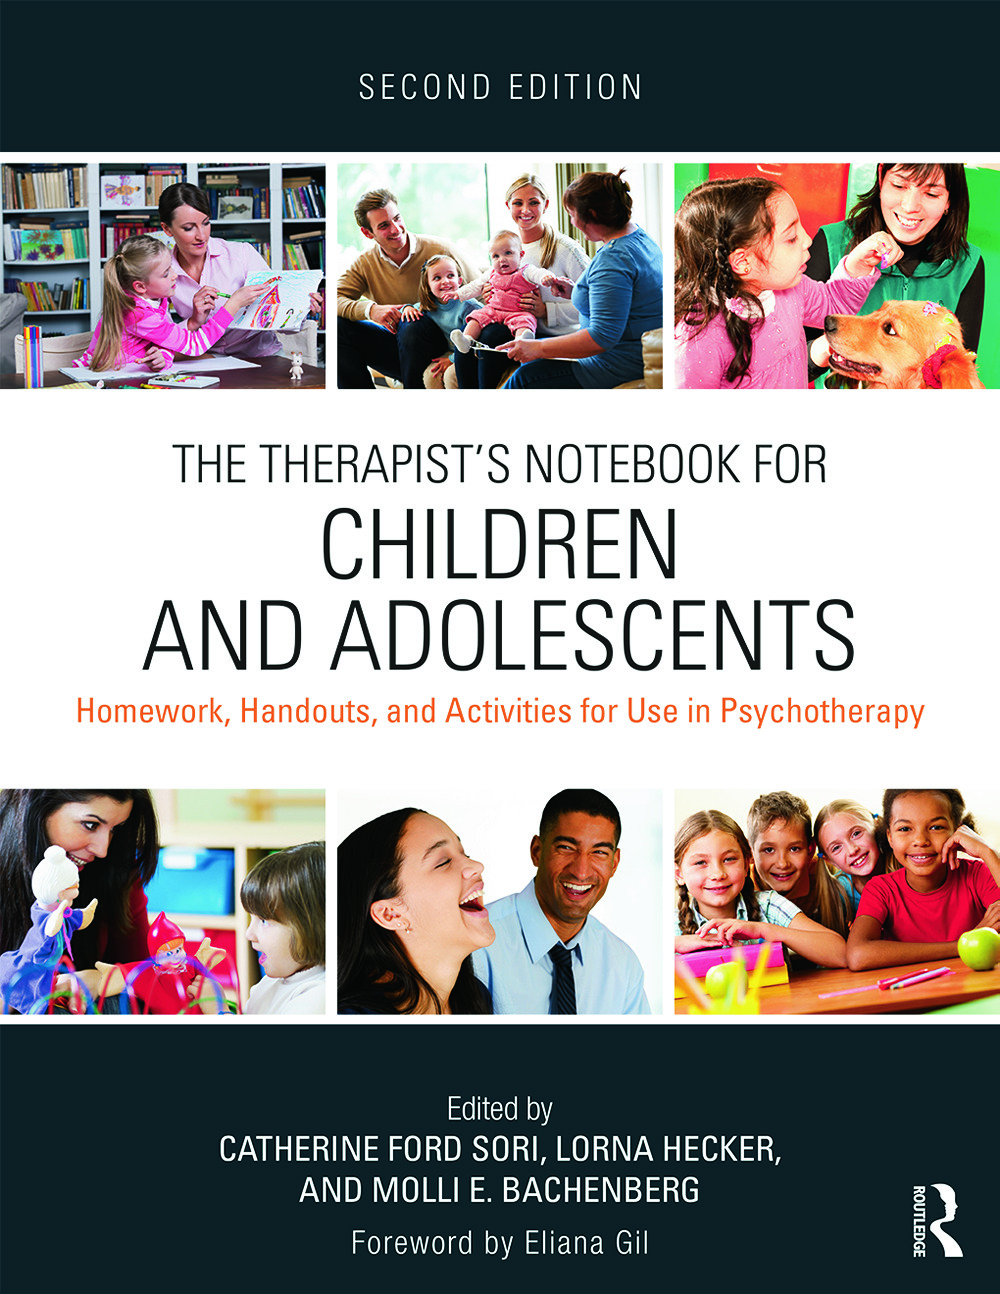 The Therapist's Notebook for Children and Adolescents: Homework, Handouts, and Activities for Use in Psychotherapy book cover